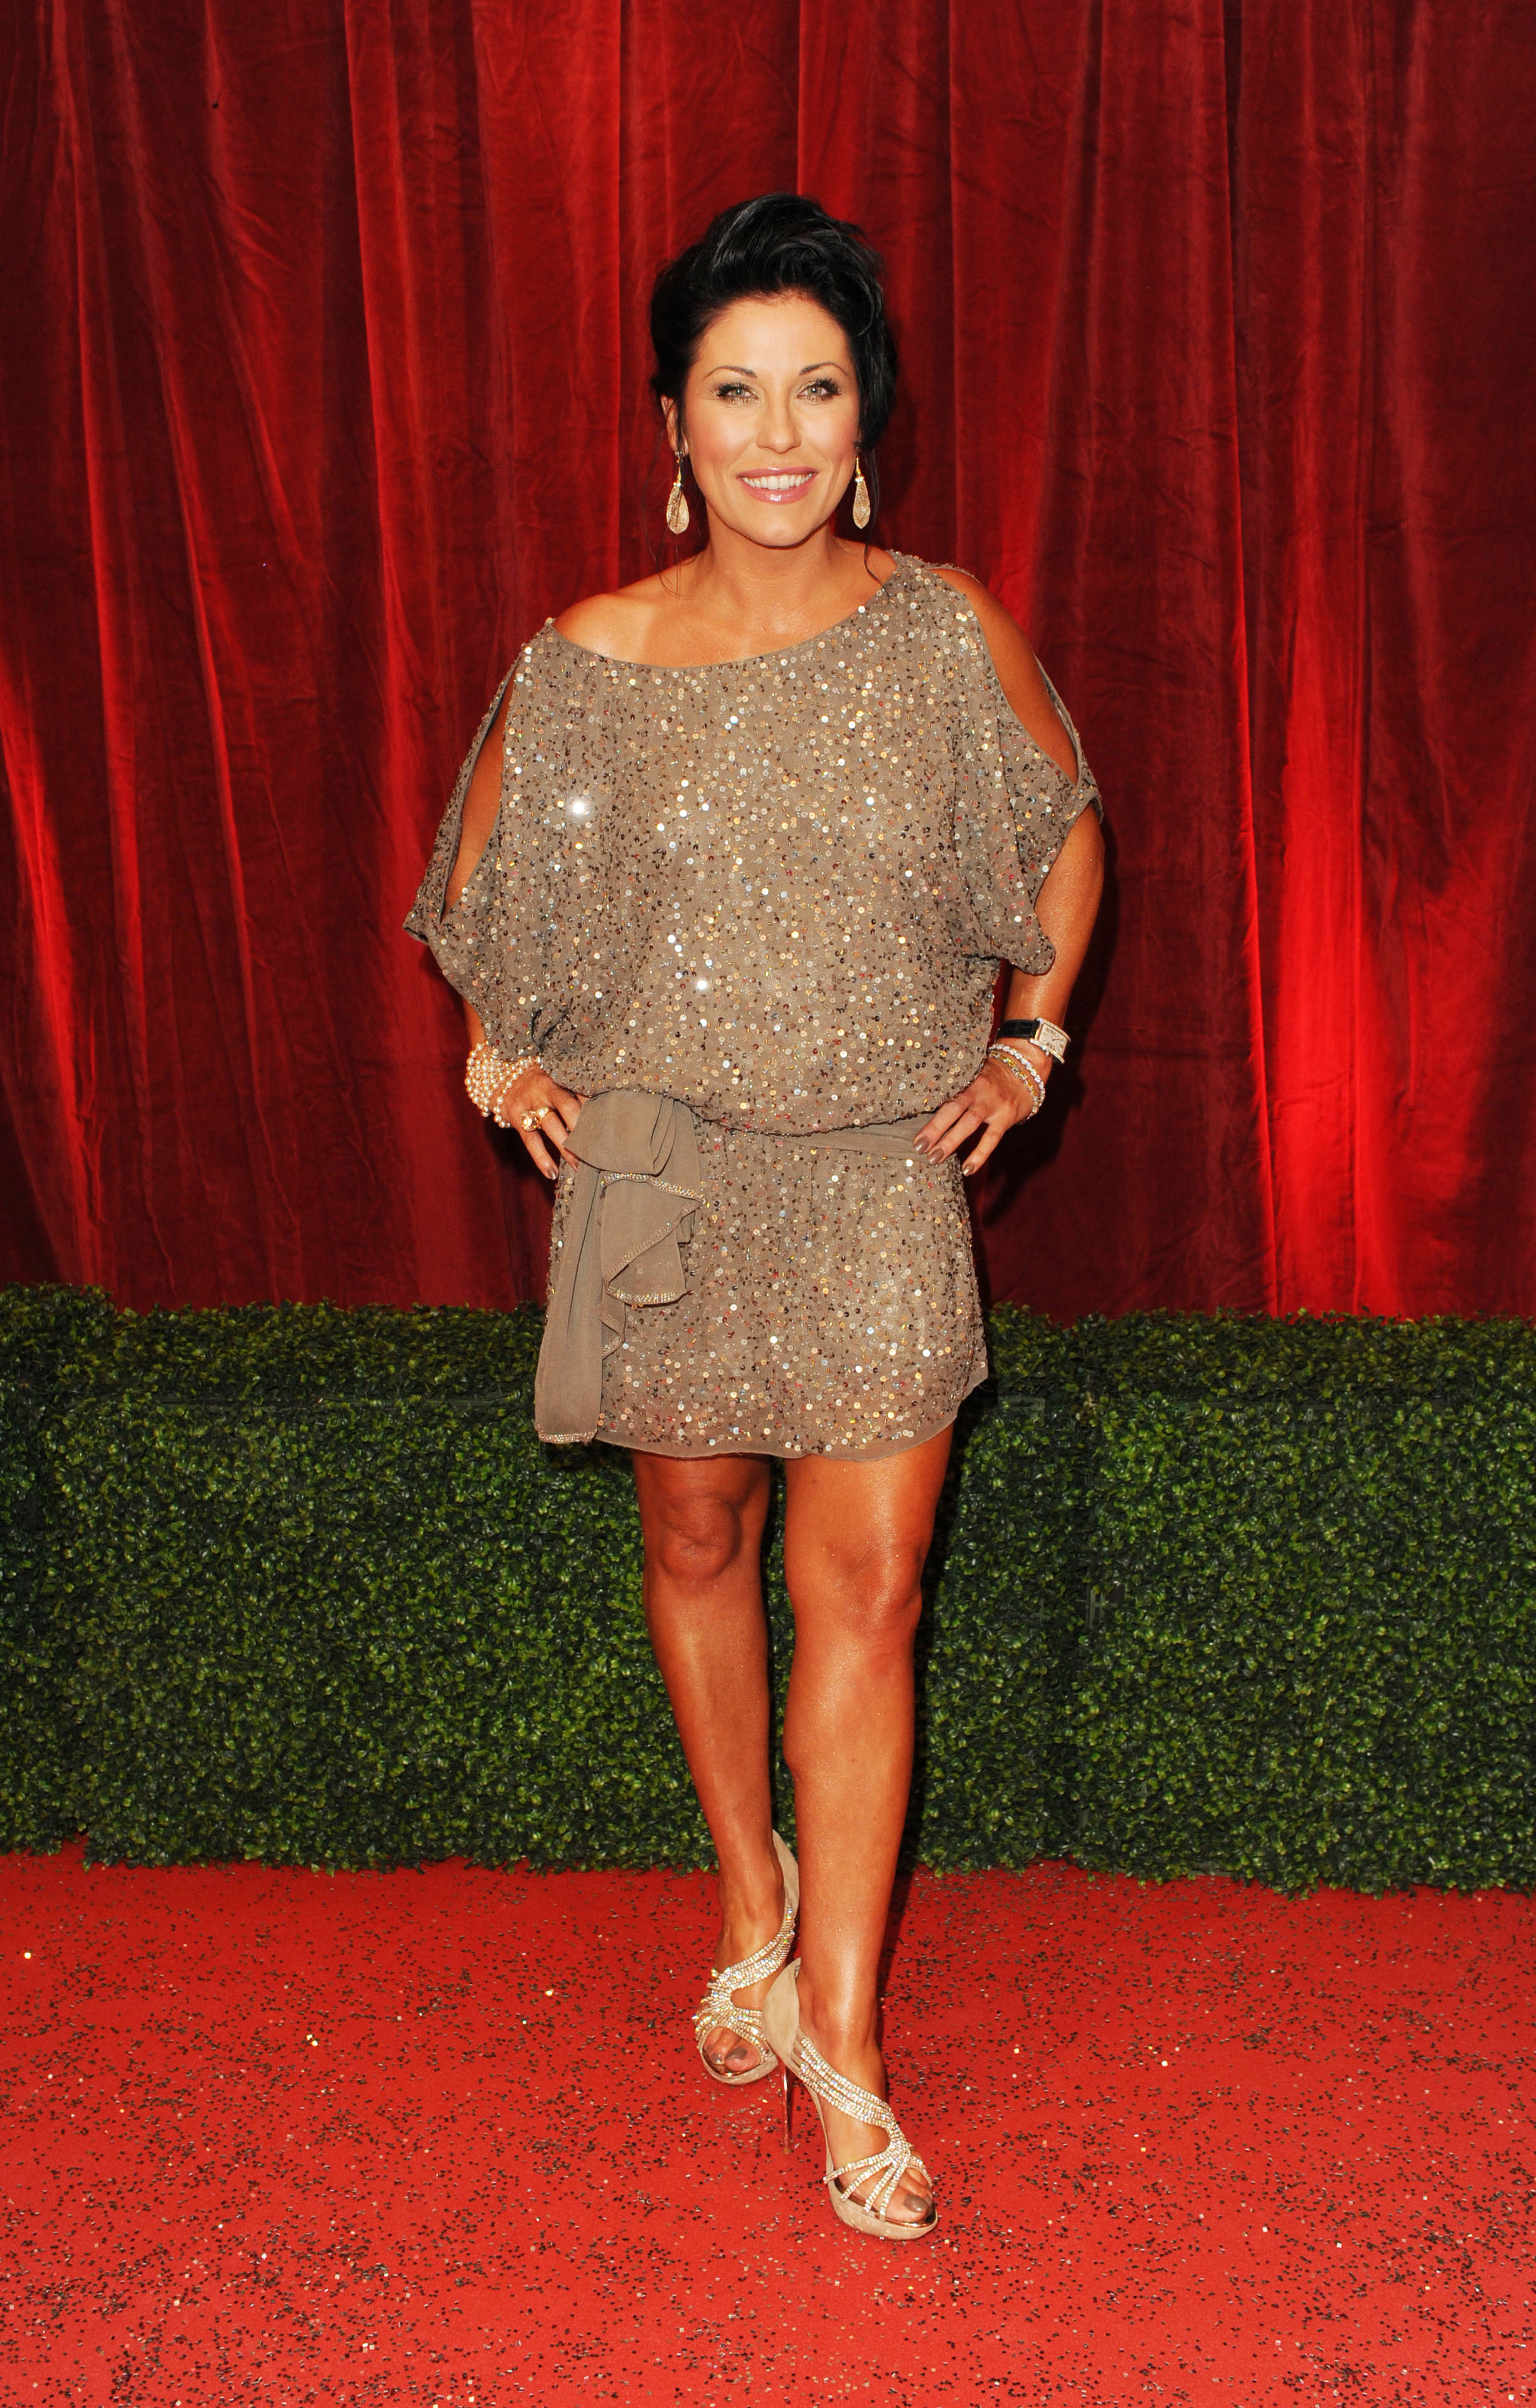 Hot Jessie Wallace nudes (53 photos), Topless, Sideboobs, Feet, braless 2006